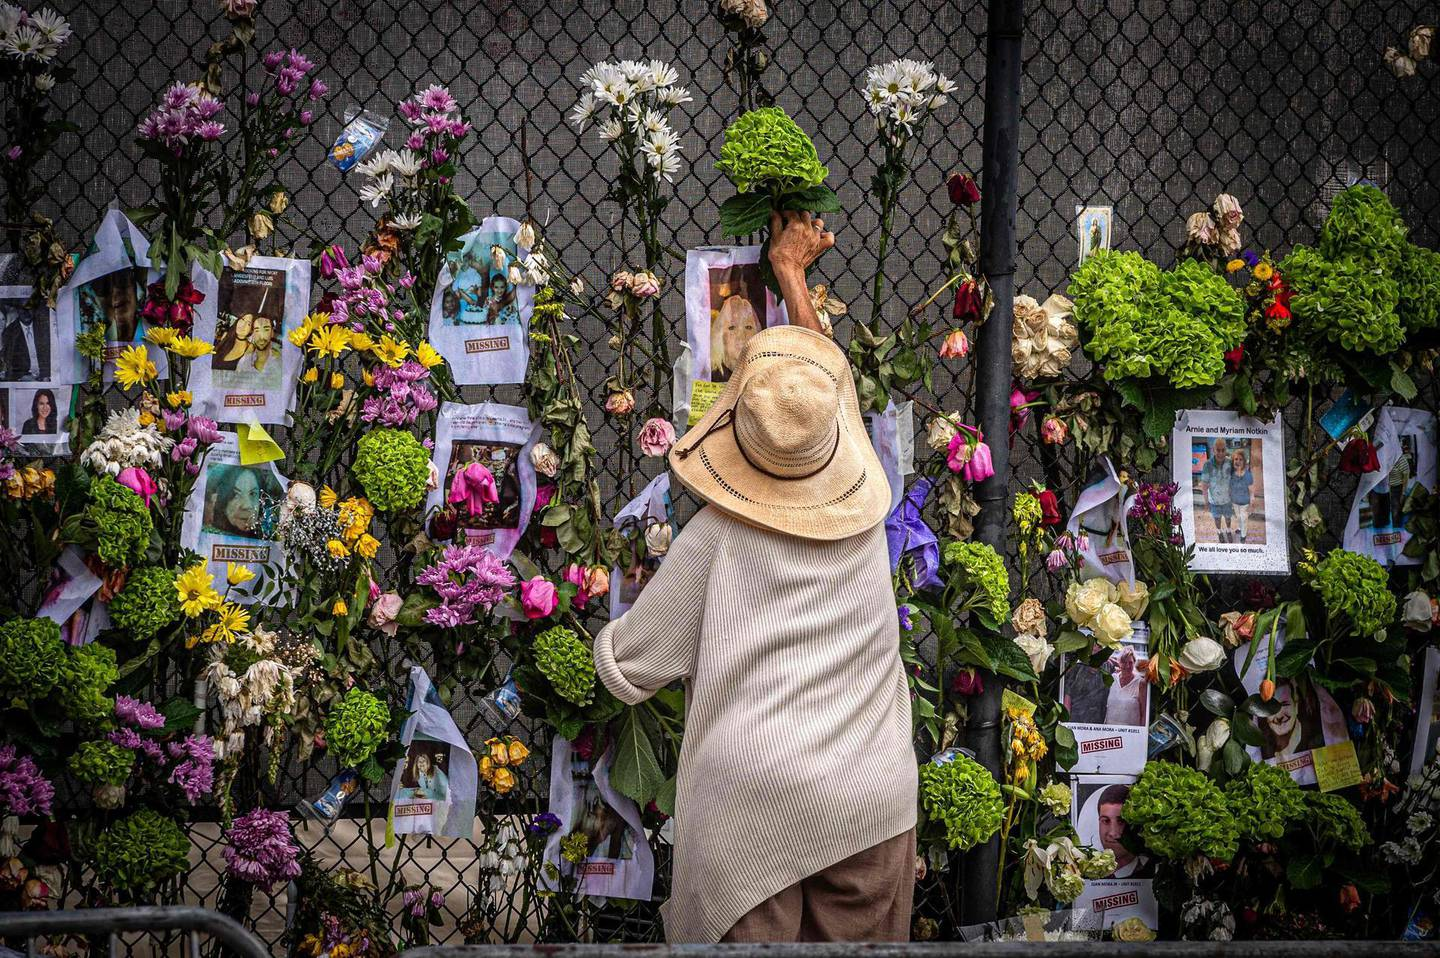 A woman adds flowers to a memorial featuring photos of some of those lost in the partially collapsed 12-story Champlain Towers South building on June 28, 2021 in Surfside, Florida. Questions mounted Monday about how a residential building in the Miami area could have collapsed so quickly and violently last week, as the death toll rose to 11 with 150 still unaccounted for, and desperate families feared the worst. / AFP / Giorgio Viera